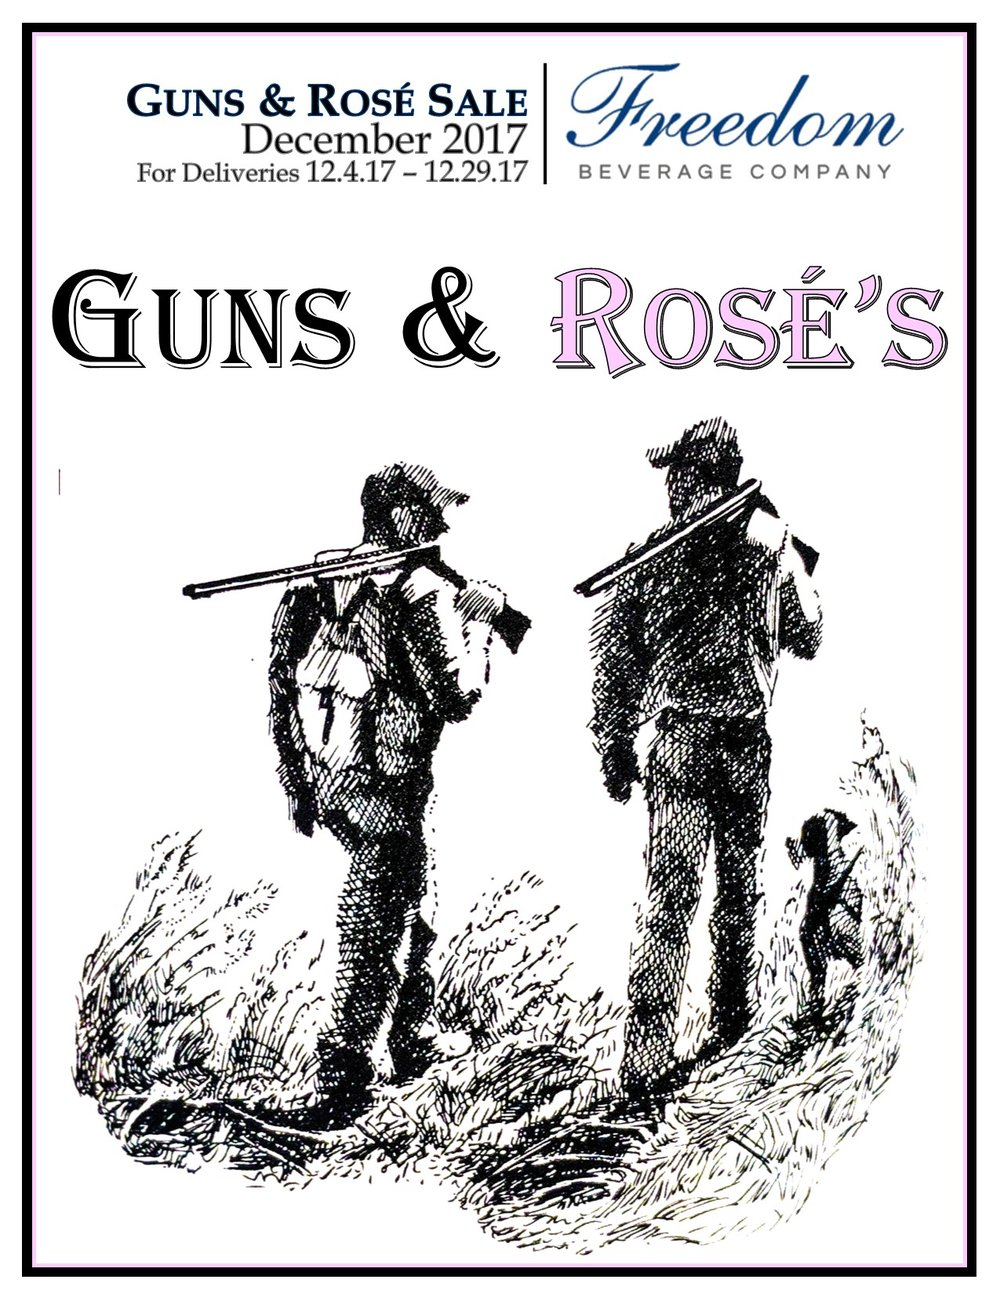 December 2017 Guns & Roses Sale - WEBSITE.jpg